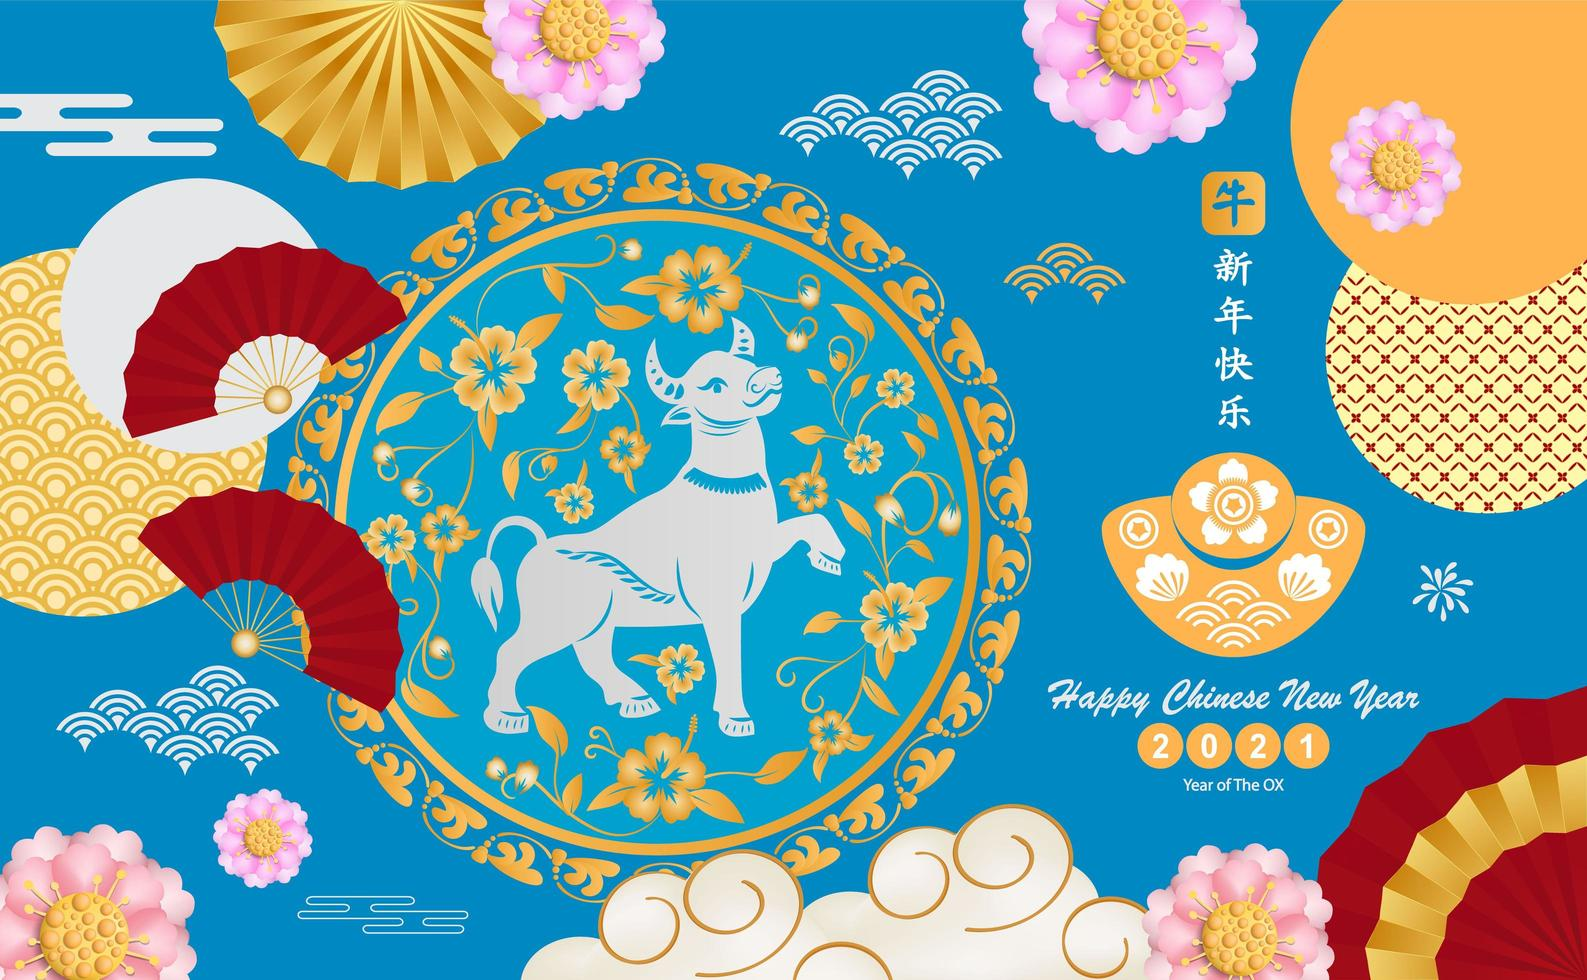 Chinese new year design with ox, flower and Asian elements vector